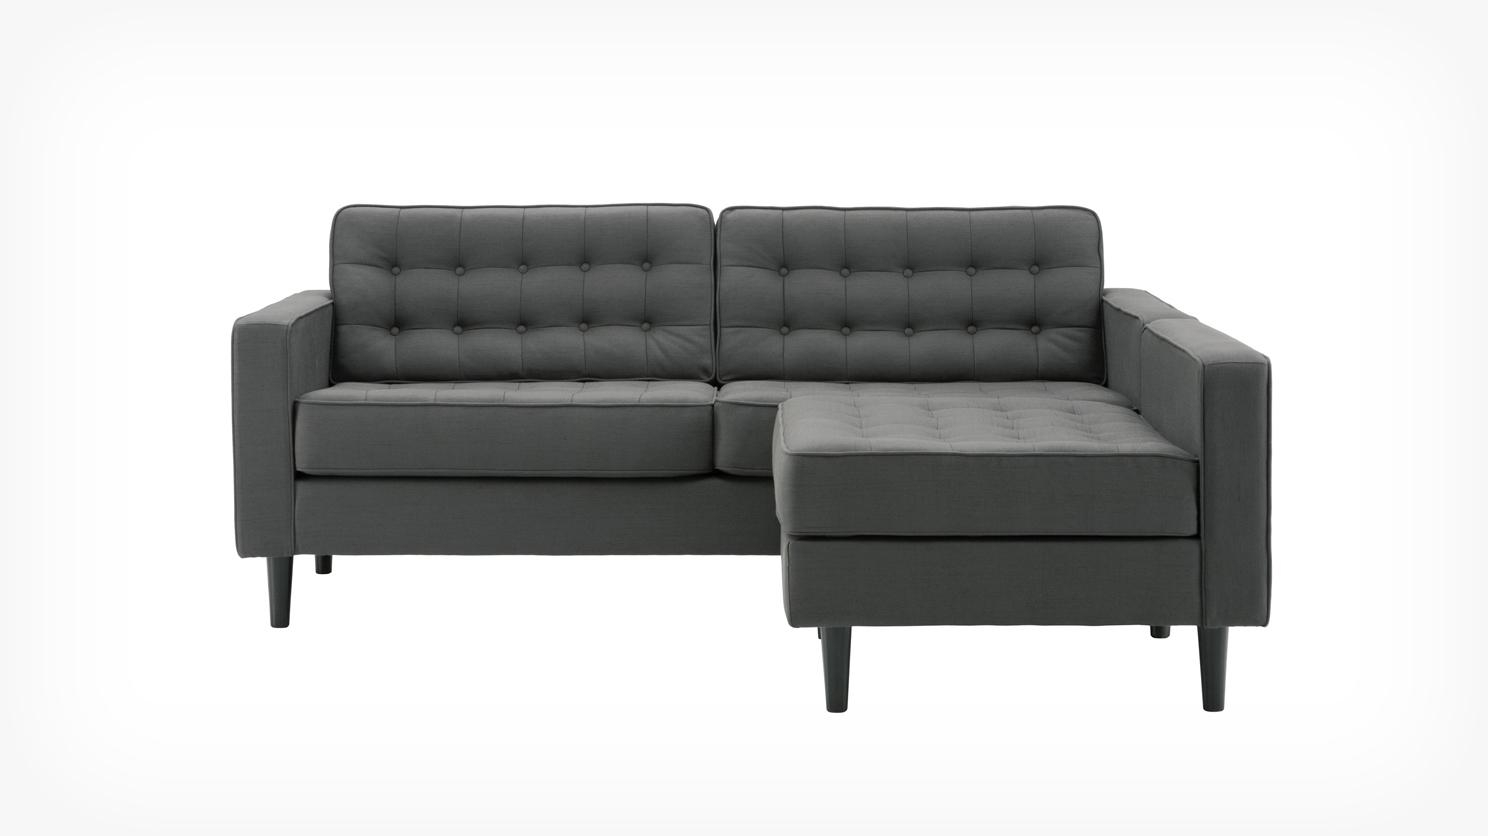 Eq3 | Reverie Apartment 2 Piece Sectional Sofa With Chaise – Fabric For Apartment Sofa Sectional (Image 8 of 15)